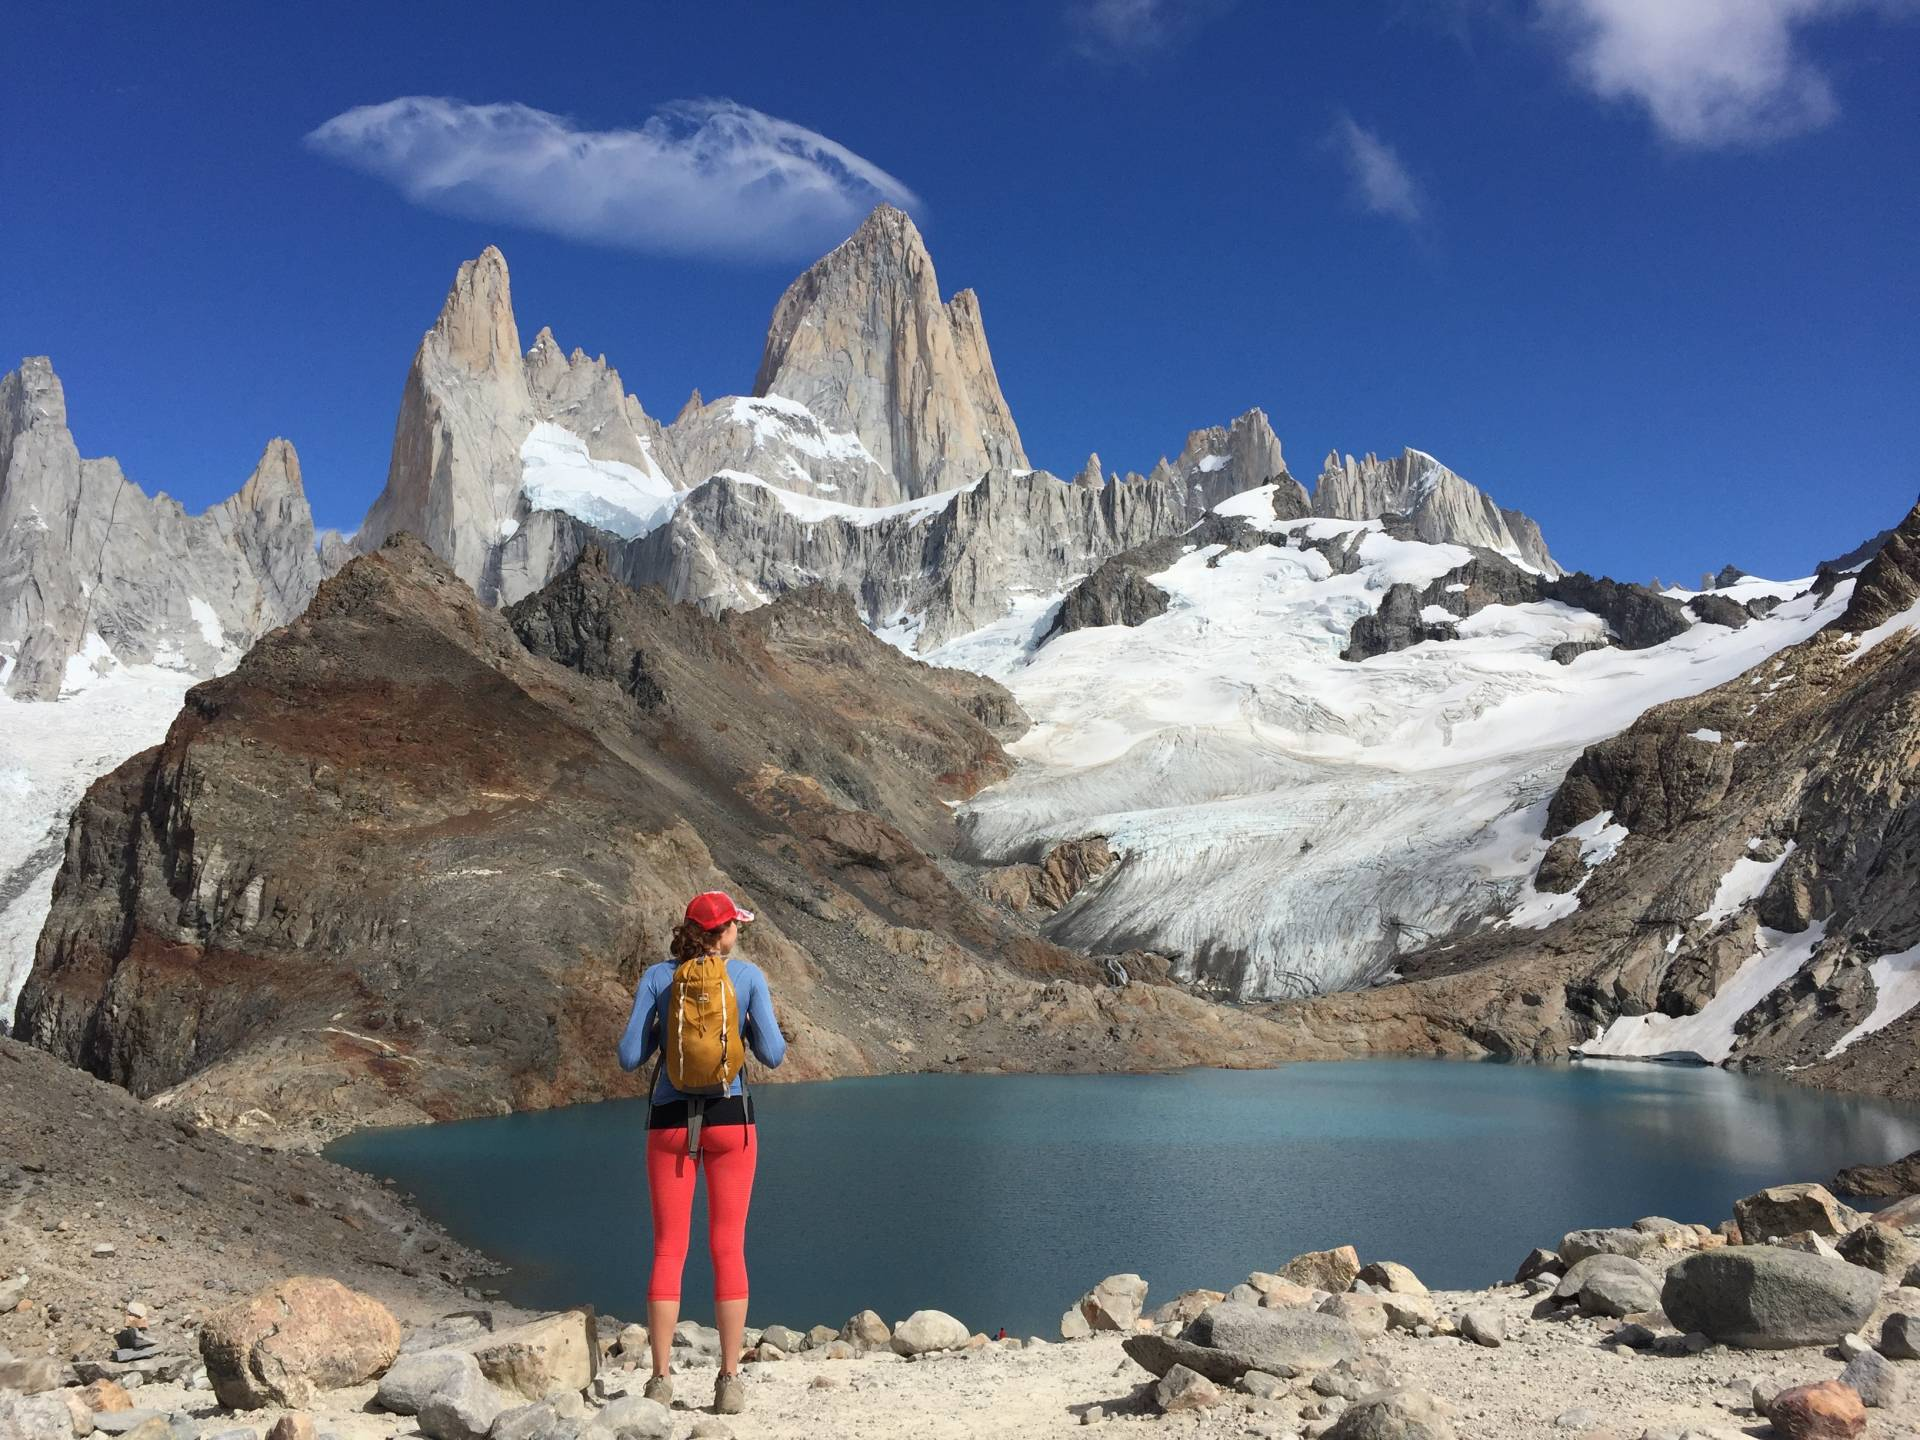 Hiking Mt. Fitz Roy, El Chalten Argentina Summer 2016